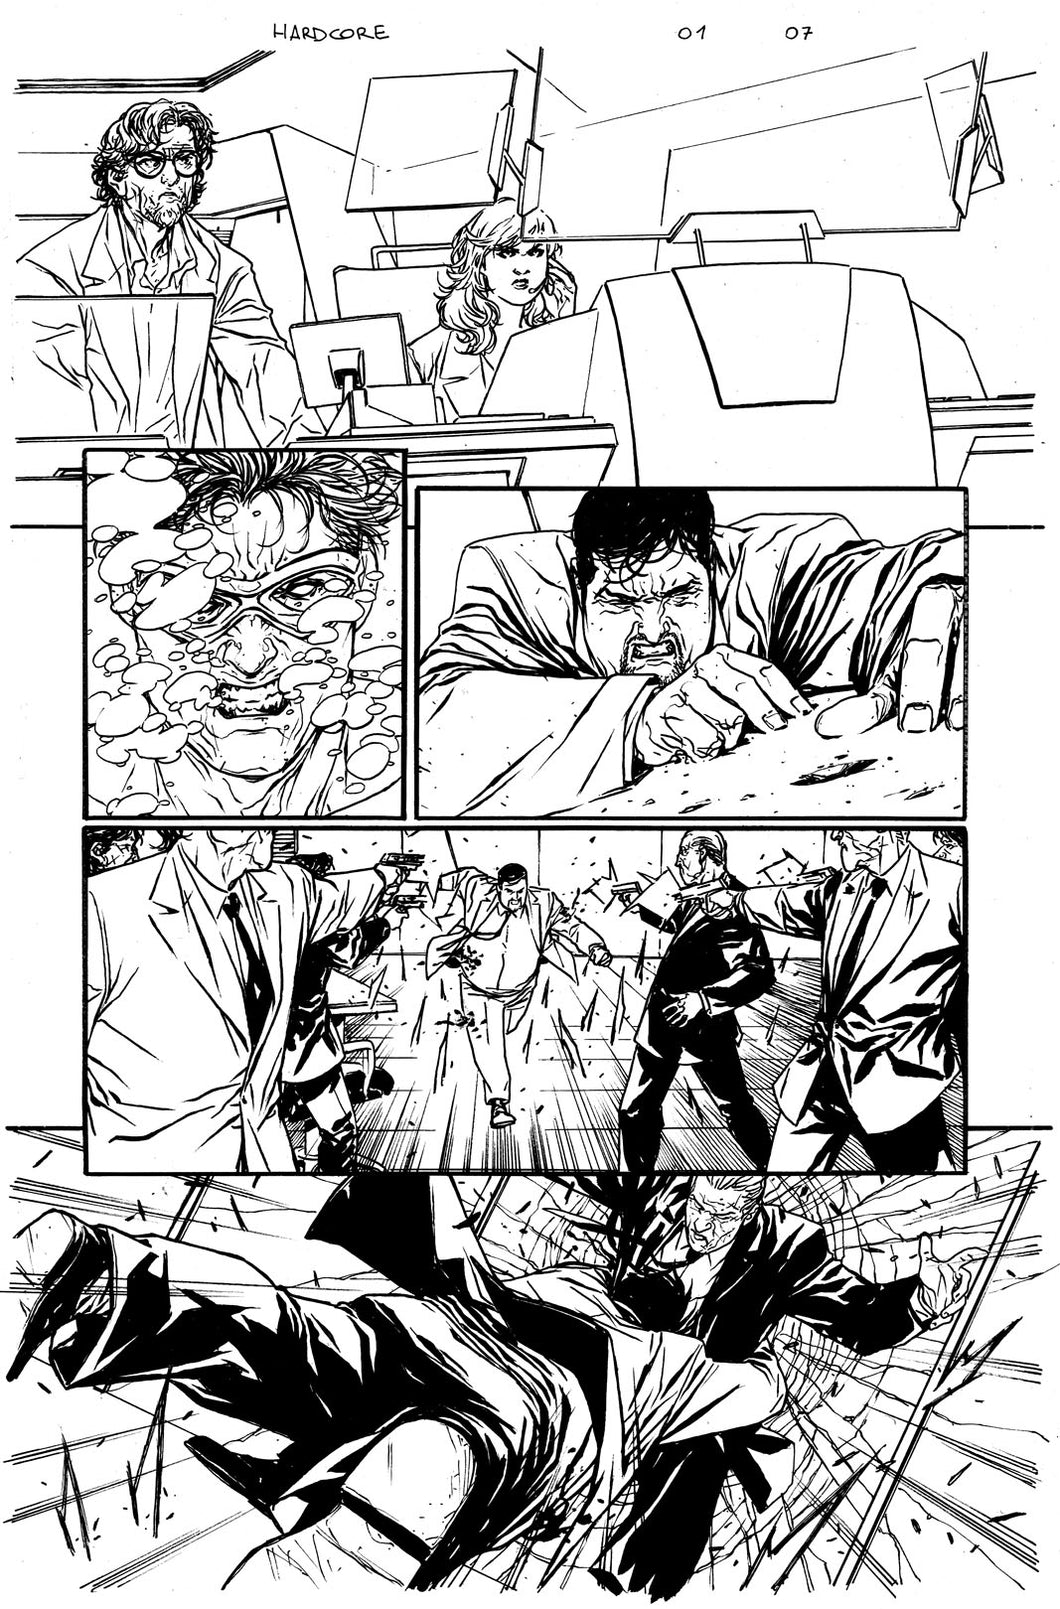 Hardcore #1 Original art - Page 07 by Alessandro Vitti